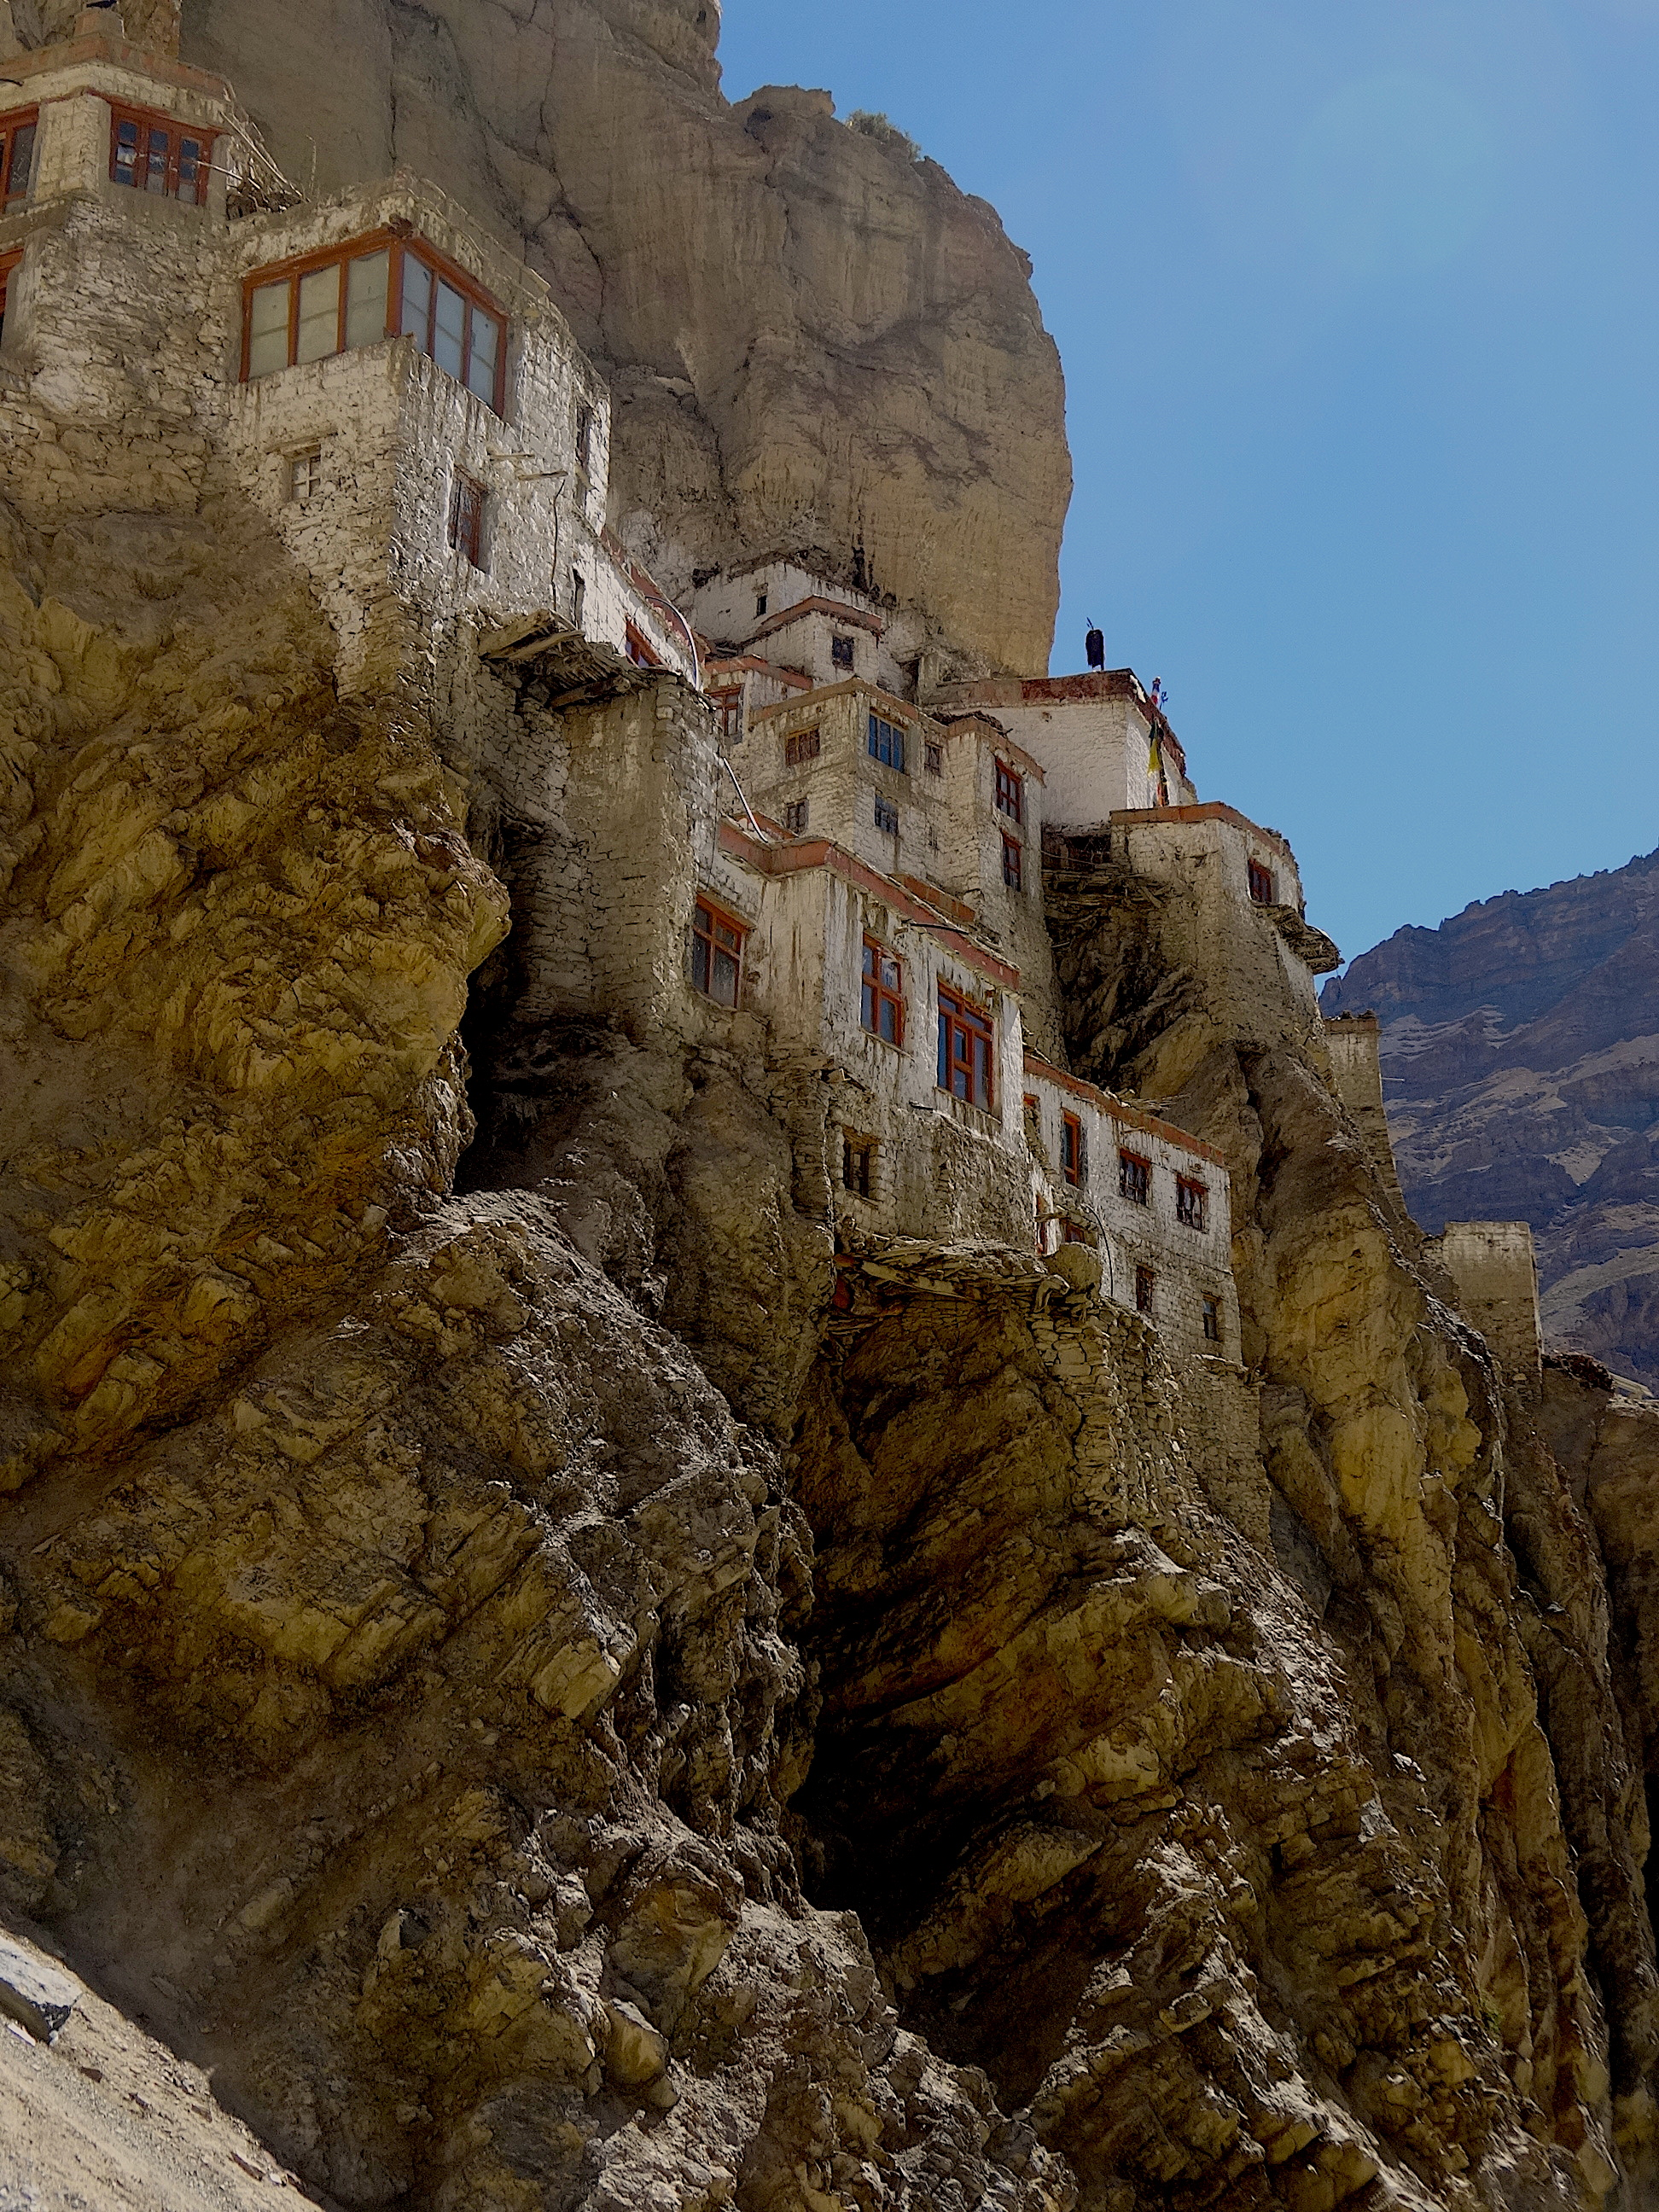 Phugtal Gompa perched eerie-like on a cliff- a reminder of old ways.